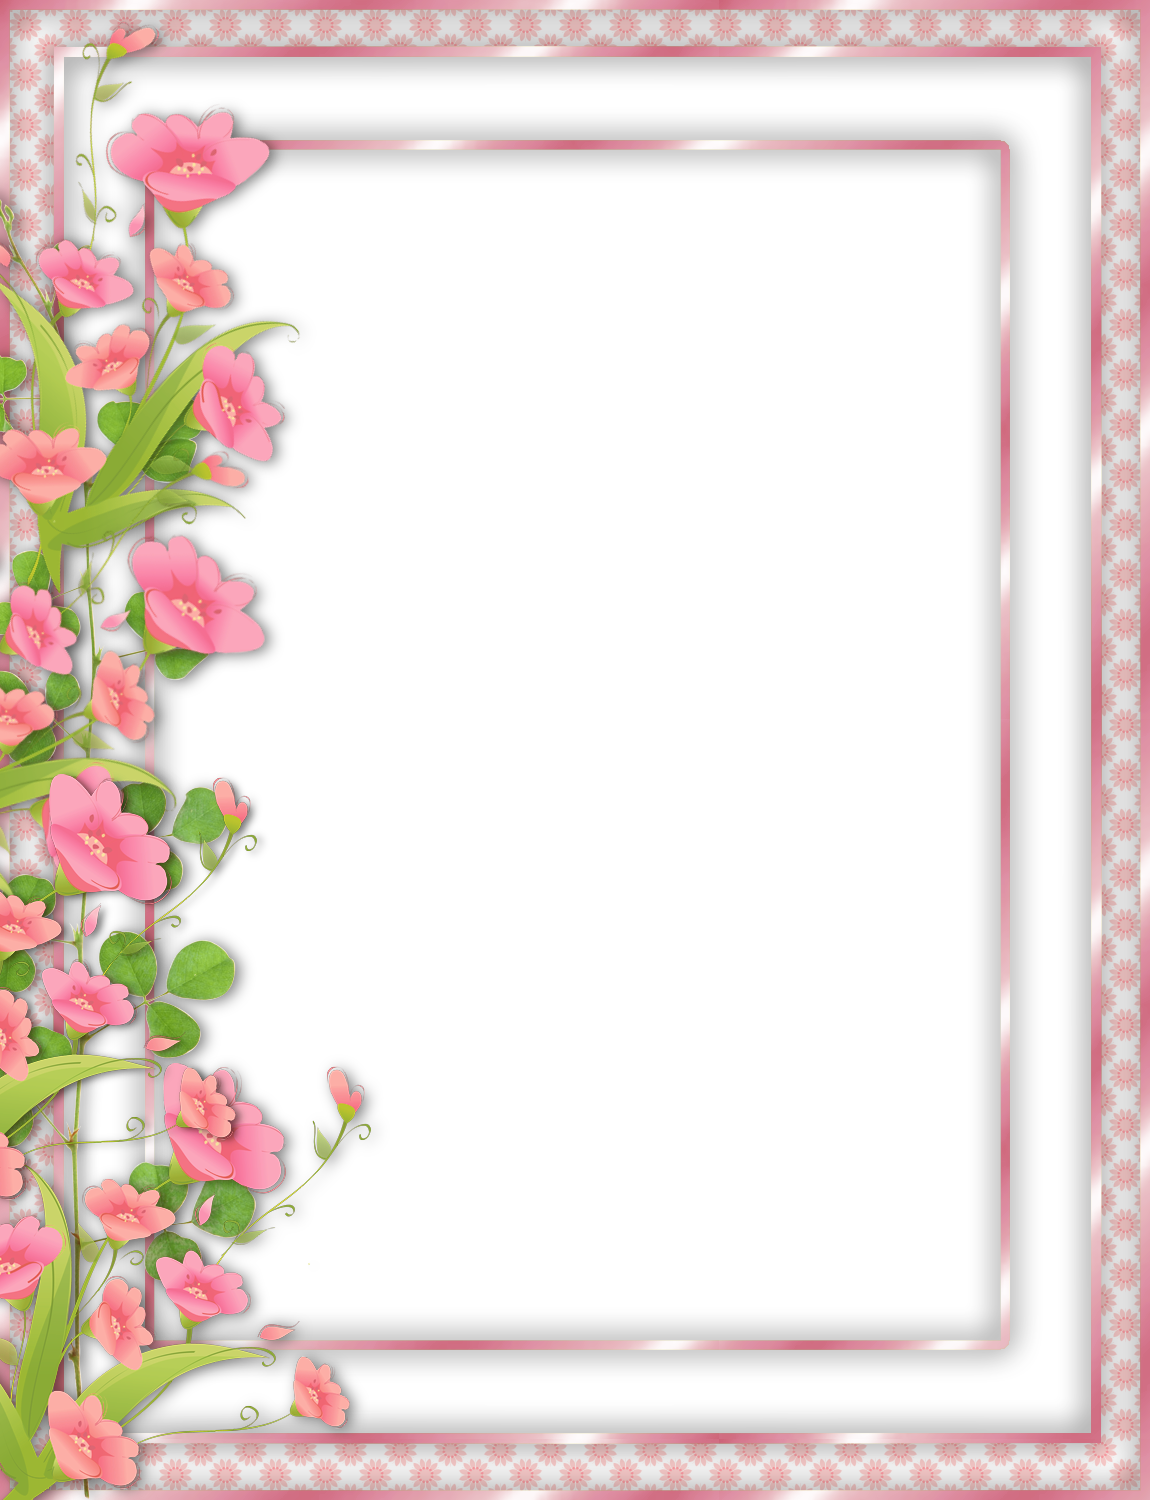 Pink Transparent With Flowers - Pink Flower Frames And Borders Png (1150x1500), Png Download